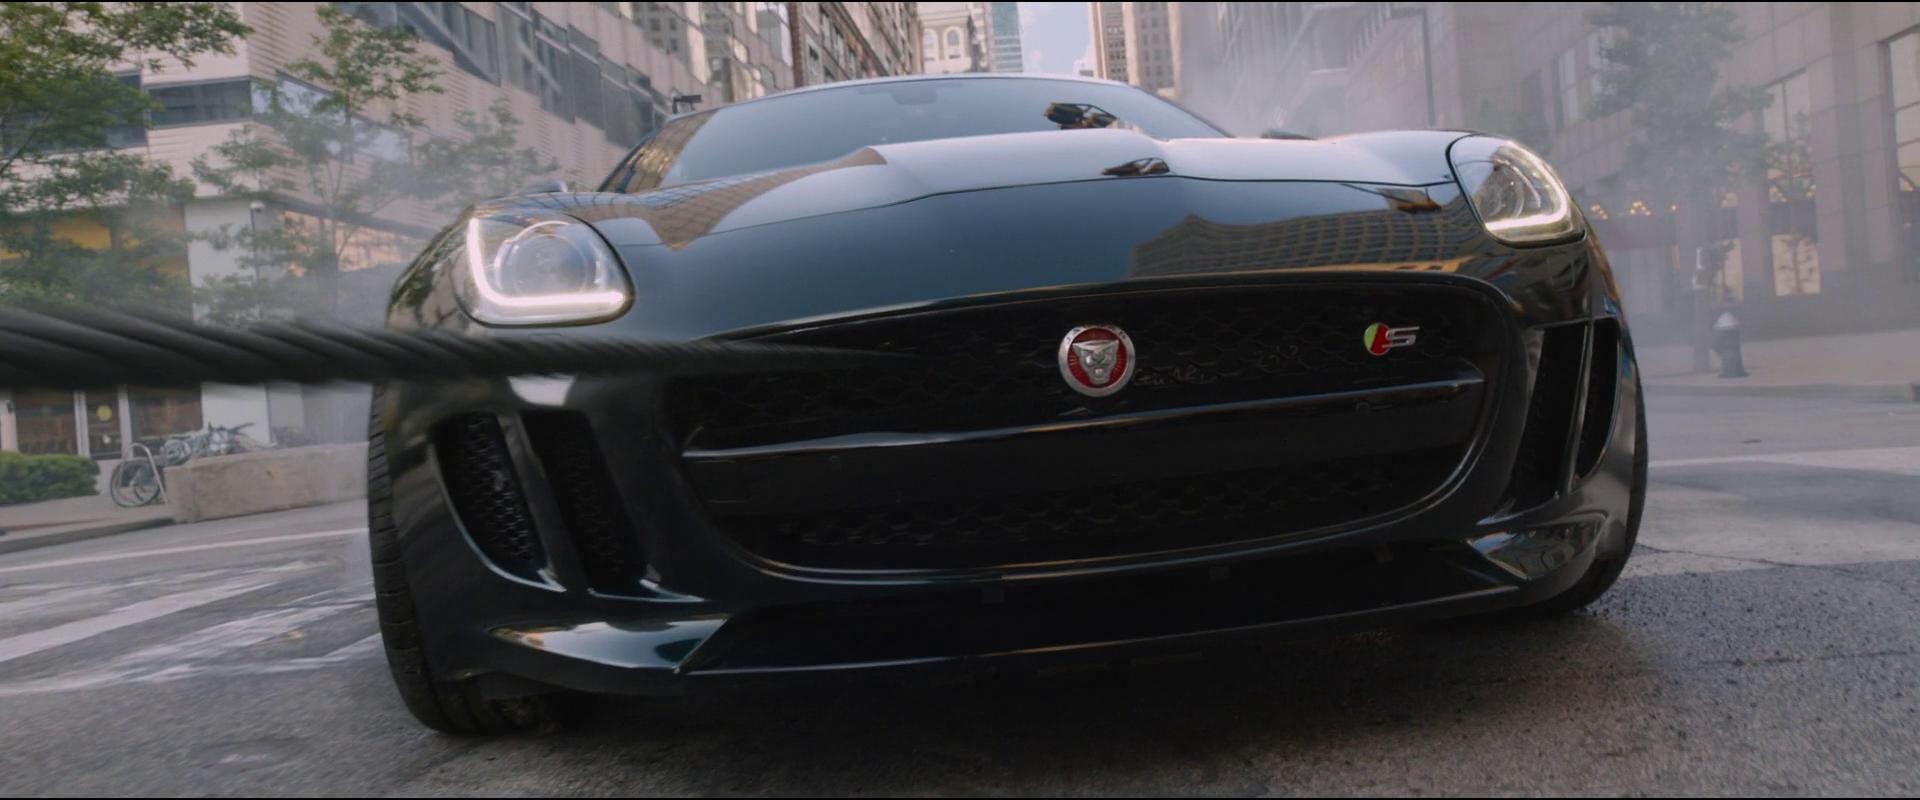 2016 jaguar f-type coupé s   the fast and the furious wiki   fandom